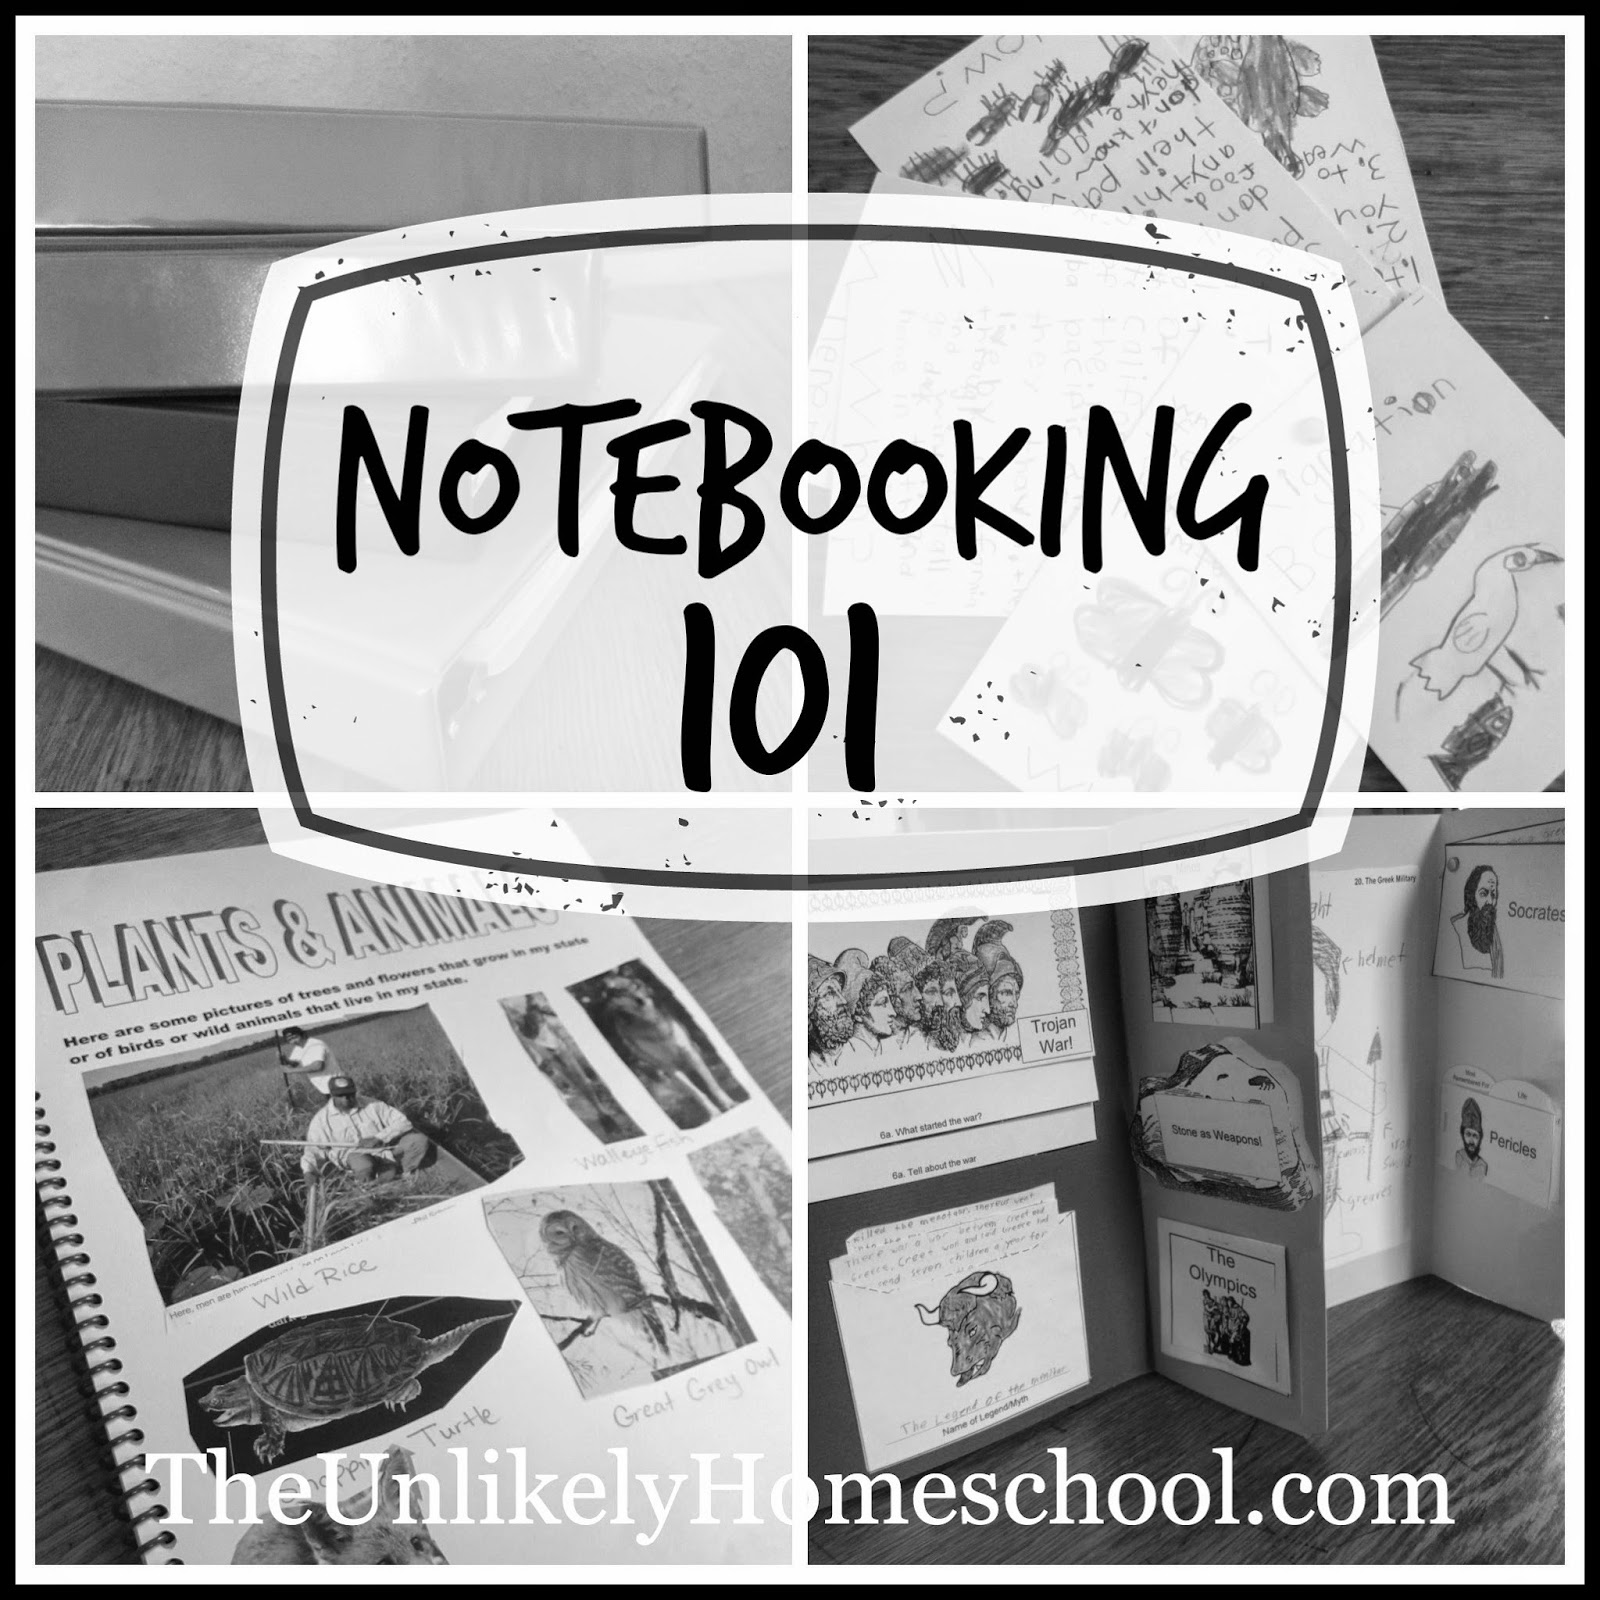 Notebooking 101: What to Include in a Notebook {The Unlikely Homeschool}